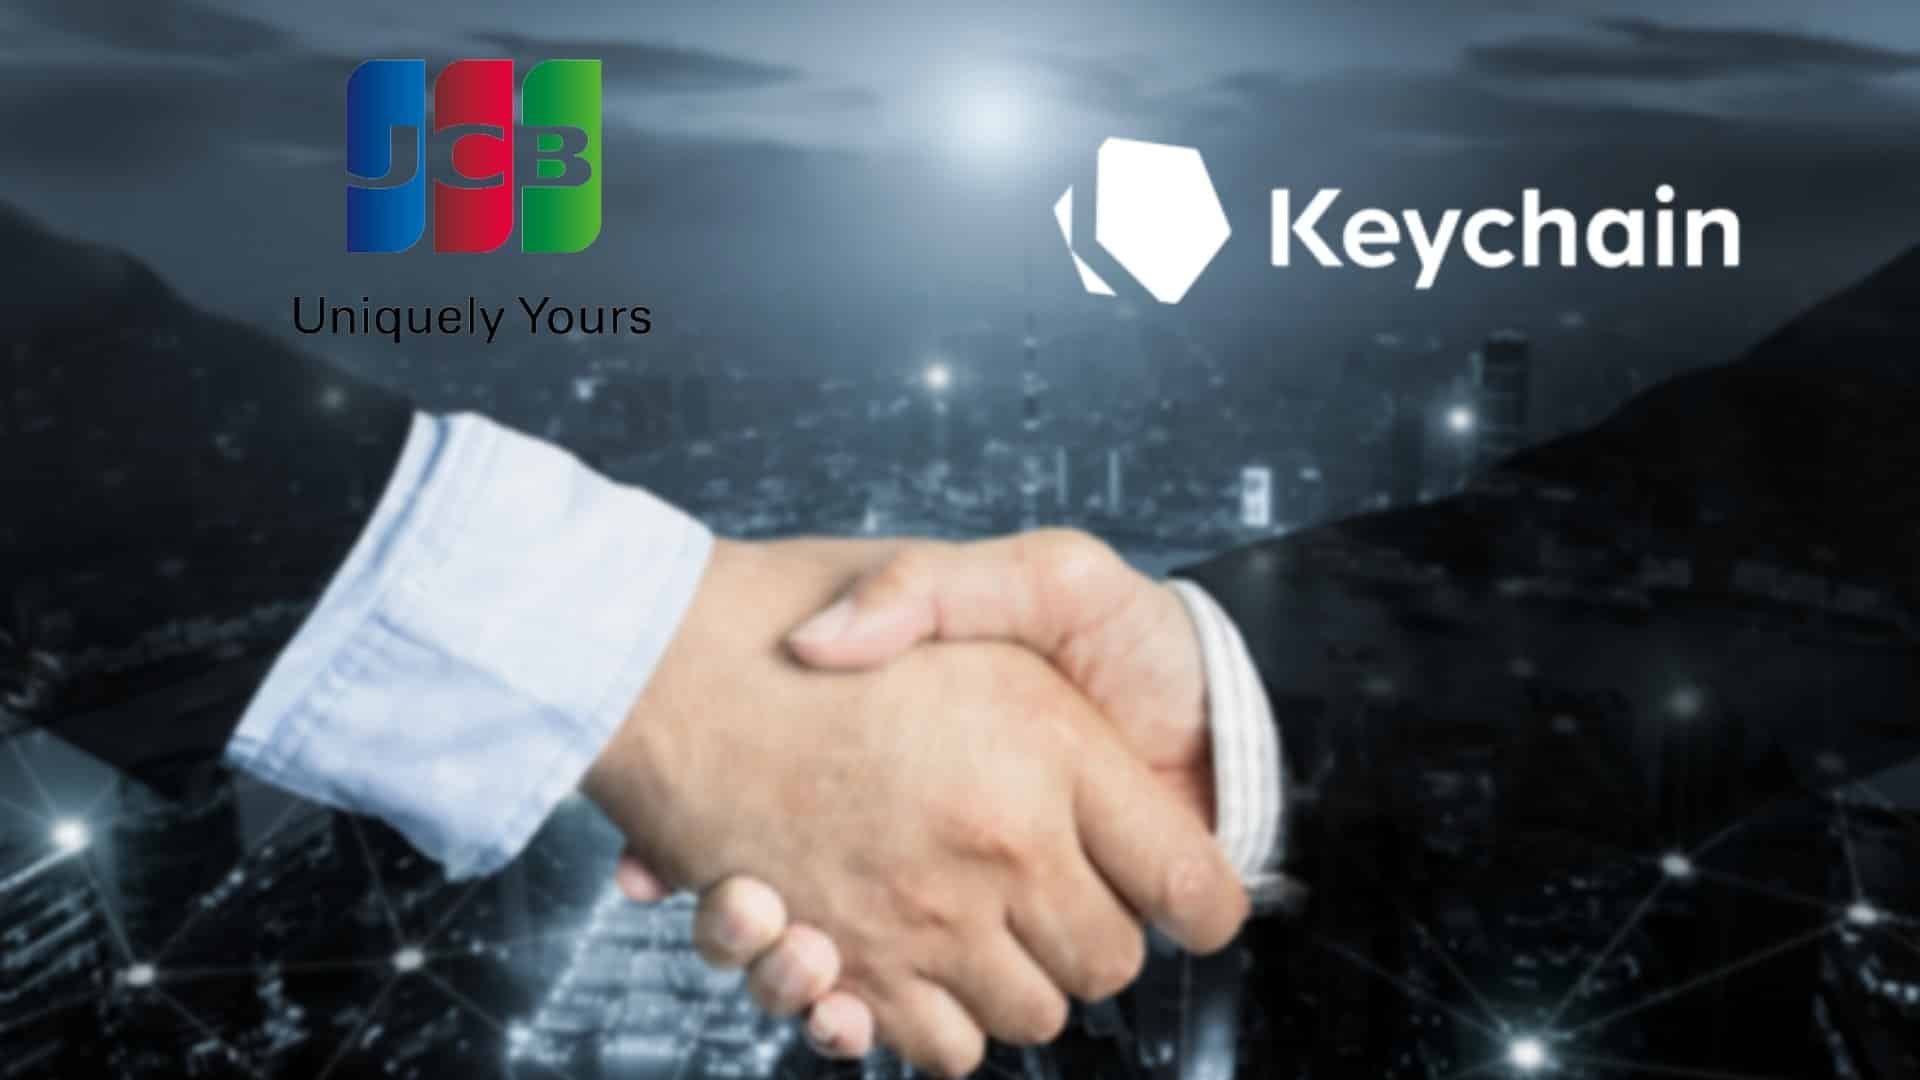 JCB and Keychain Sign Strategic Agreement to Leverage Blockchain for Payments